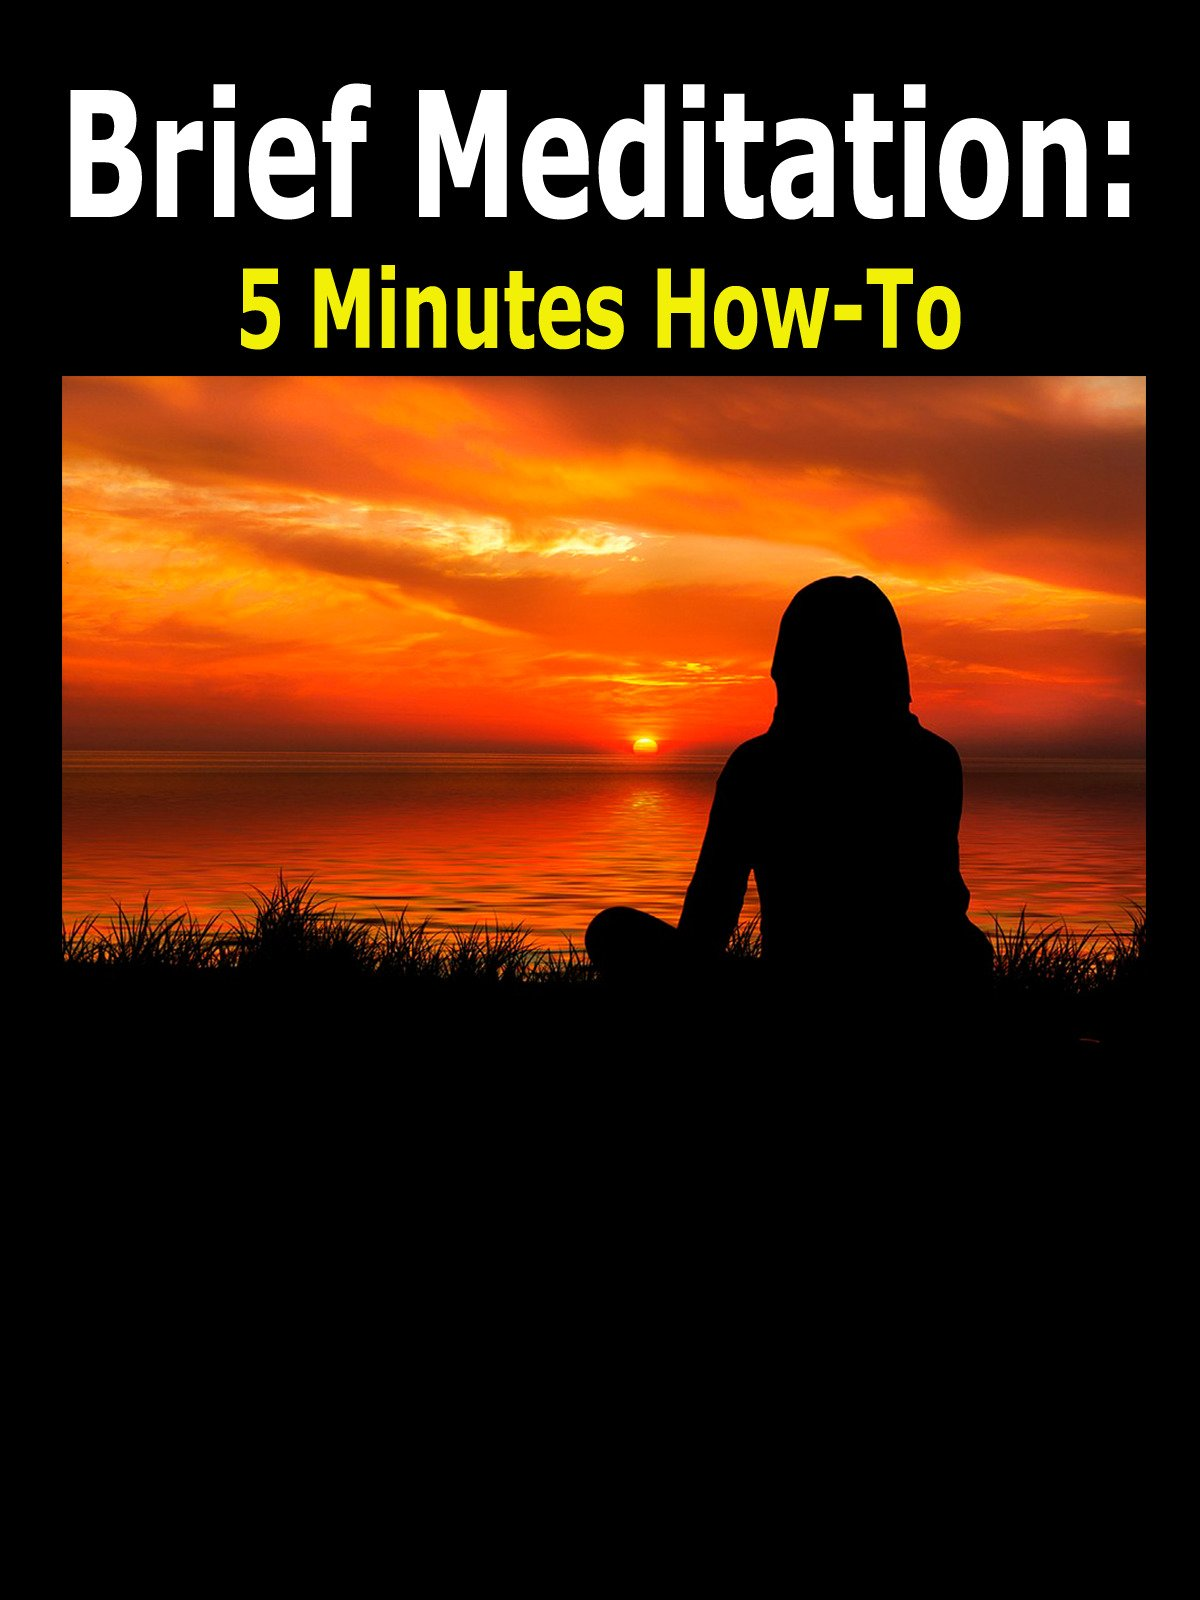 Brief Meditation: 5 Minute How To